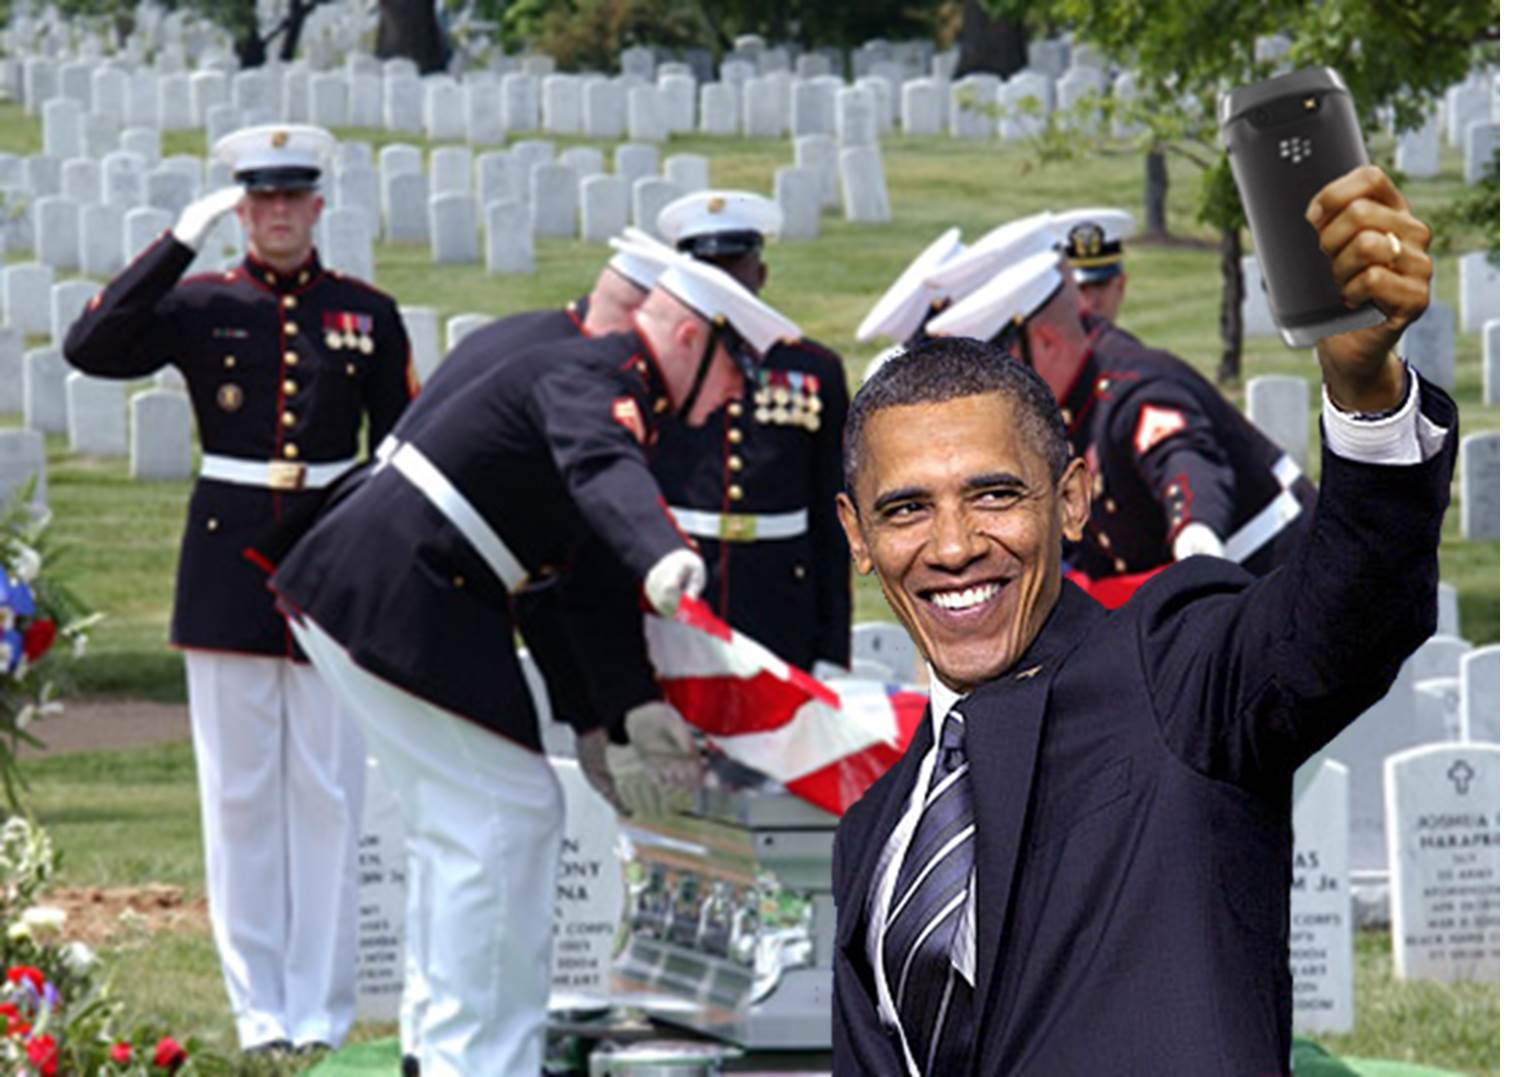 http://texan2driver.files.wordpress.com/2013/12/obama-selfie-vet-funeral-1.jpg